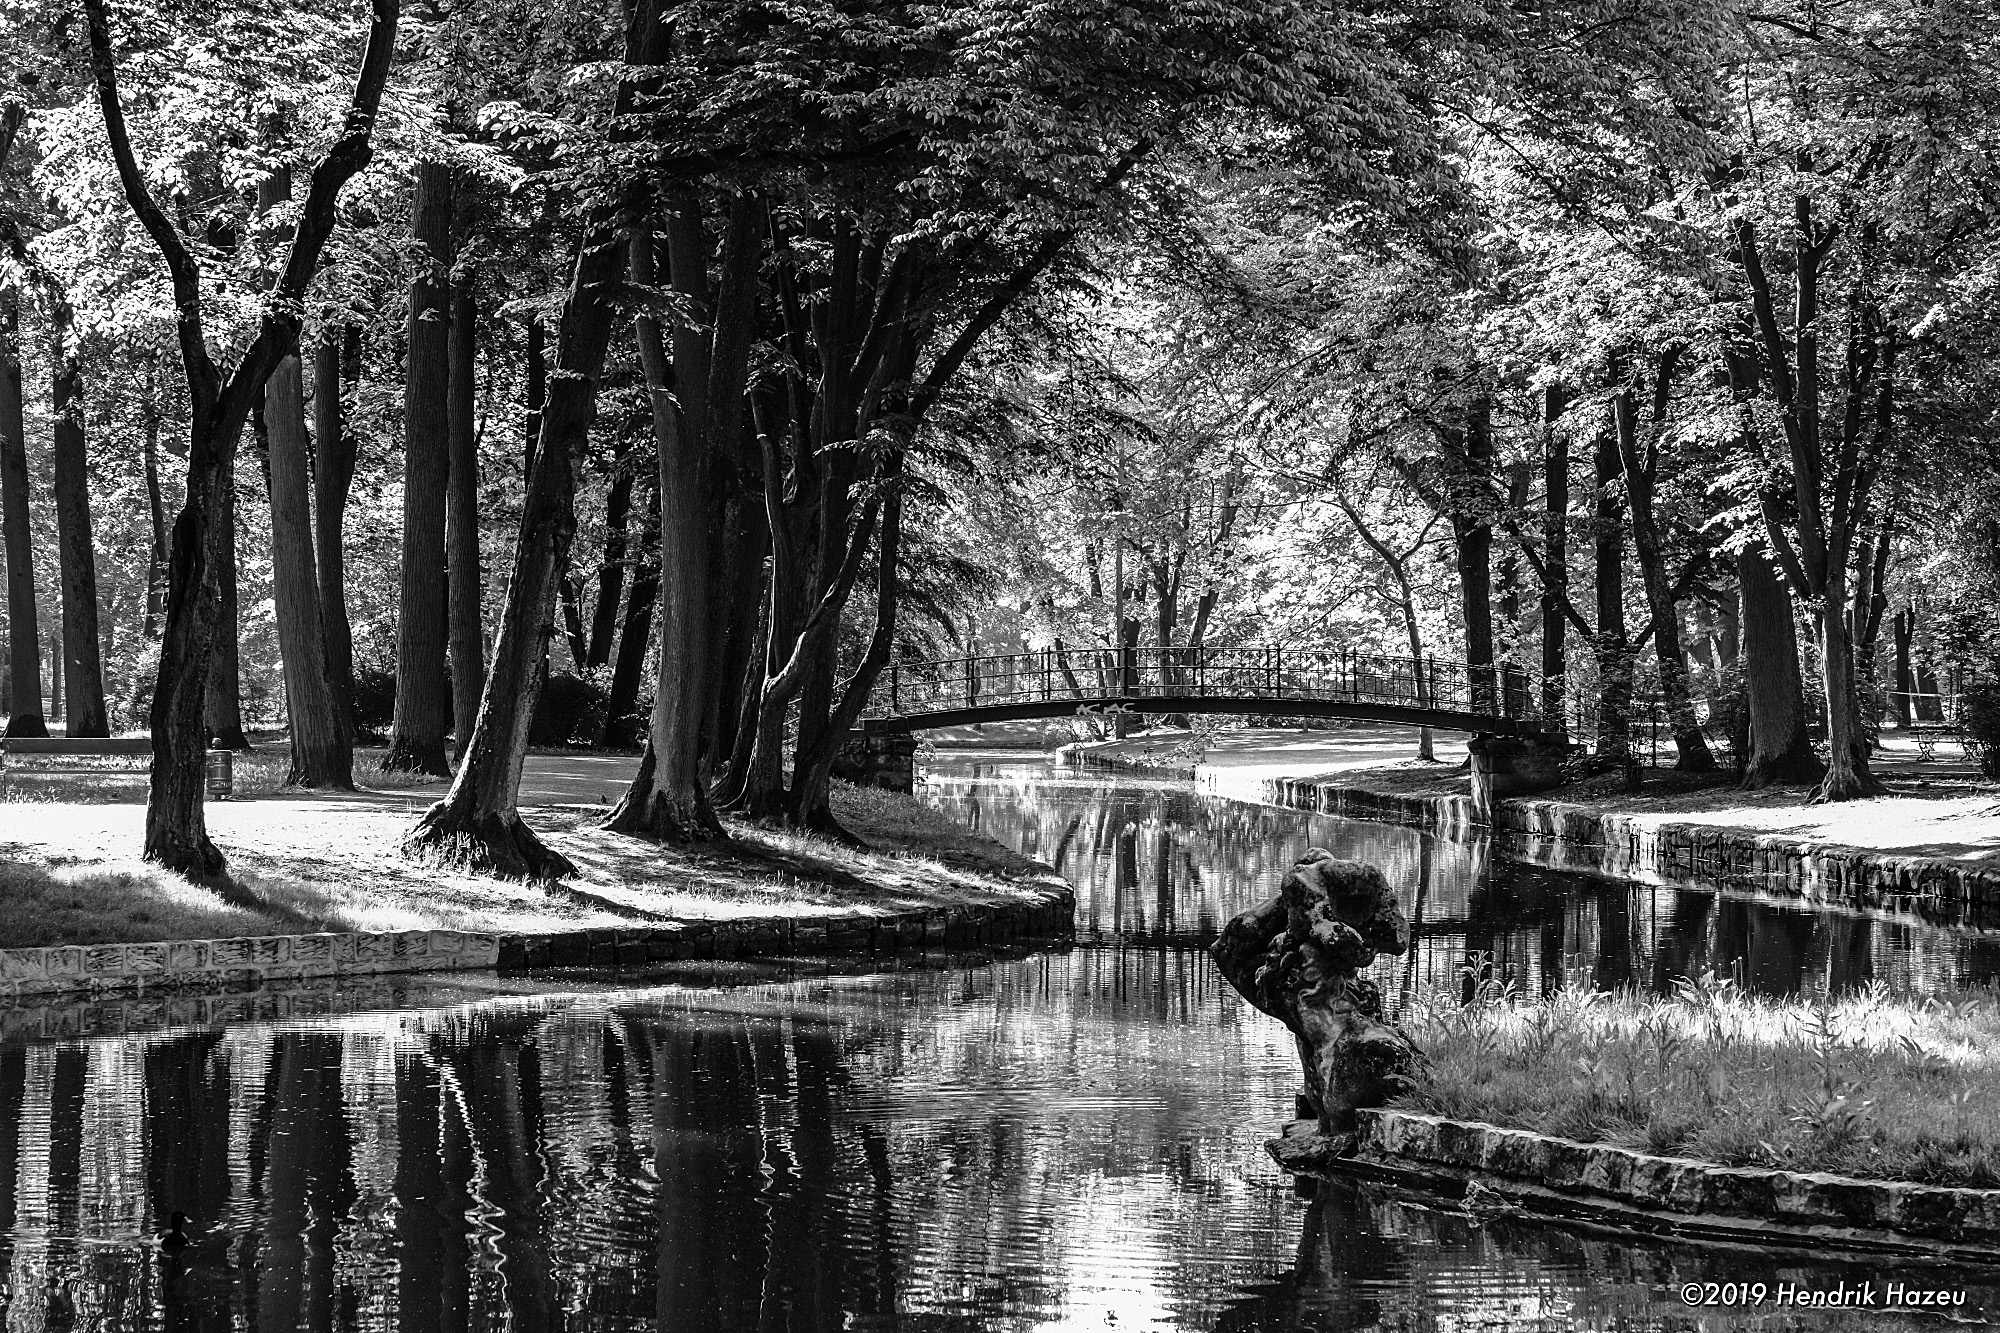 The Hof Garden in Bayreuth, captured on Fuji X-H1 with XF 56mm F/1.2 @F/8 1/20sec ISO 200, ACROS-R JPEG